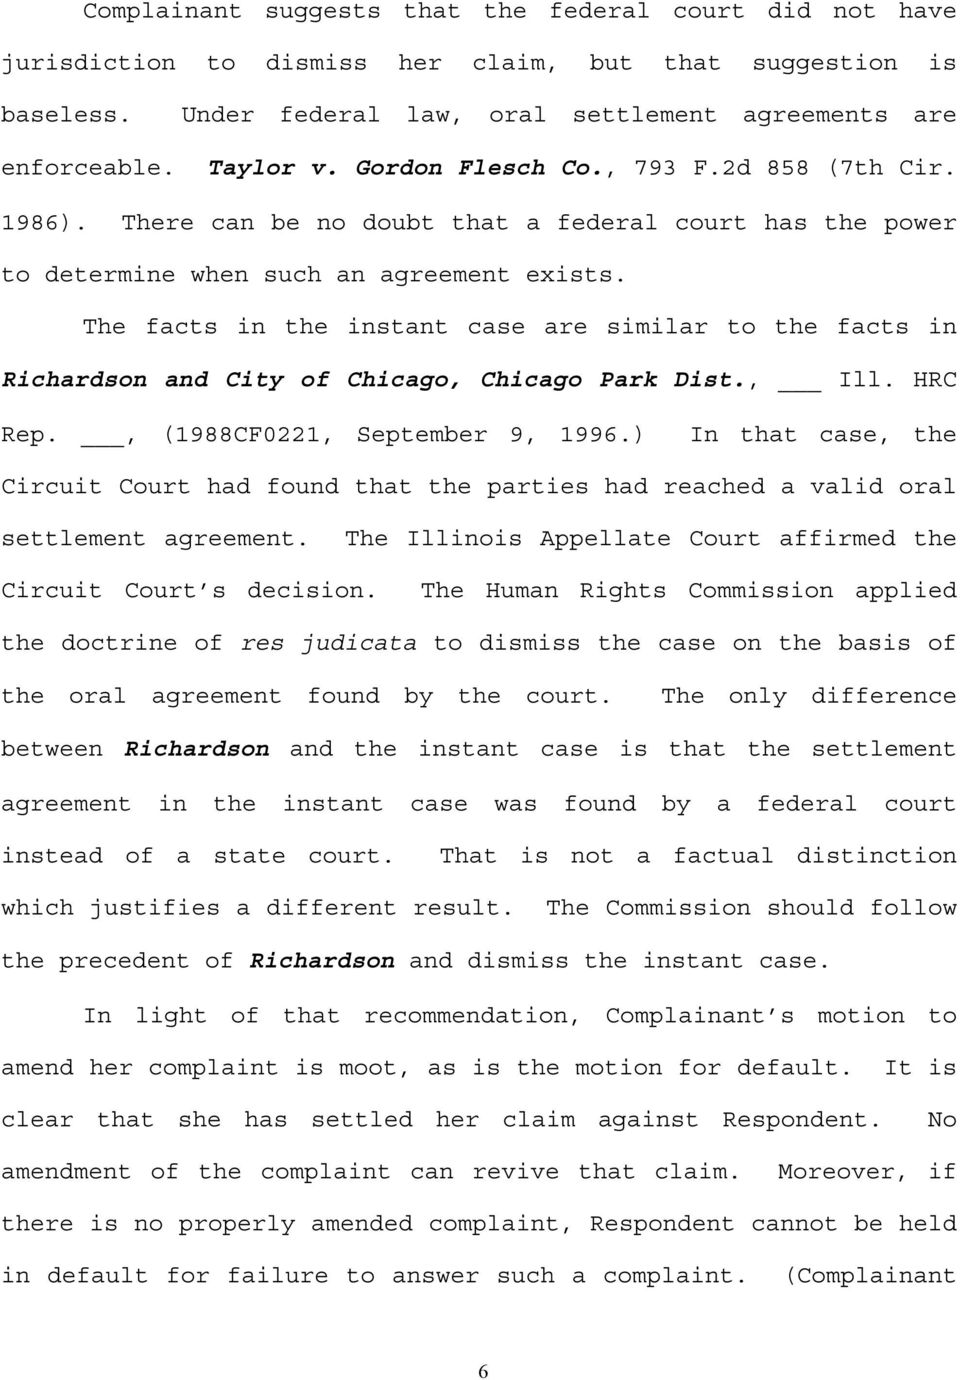 The facts in the instant case are similar to the facts in Richardson and City of Chicago, Chicago Park Dist., Ill. HRC Rep., (1988CF0221, September 9, 1996.